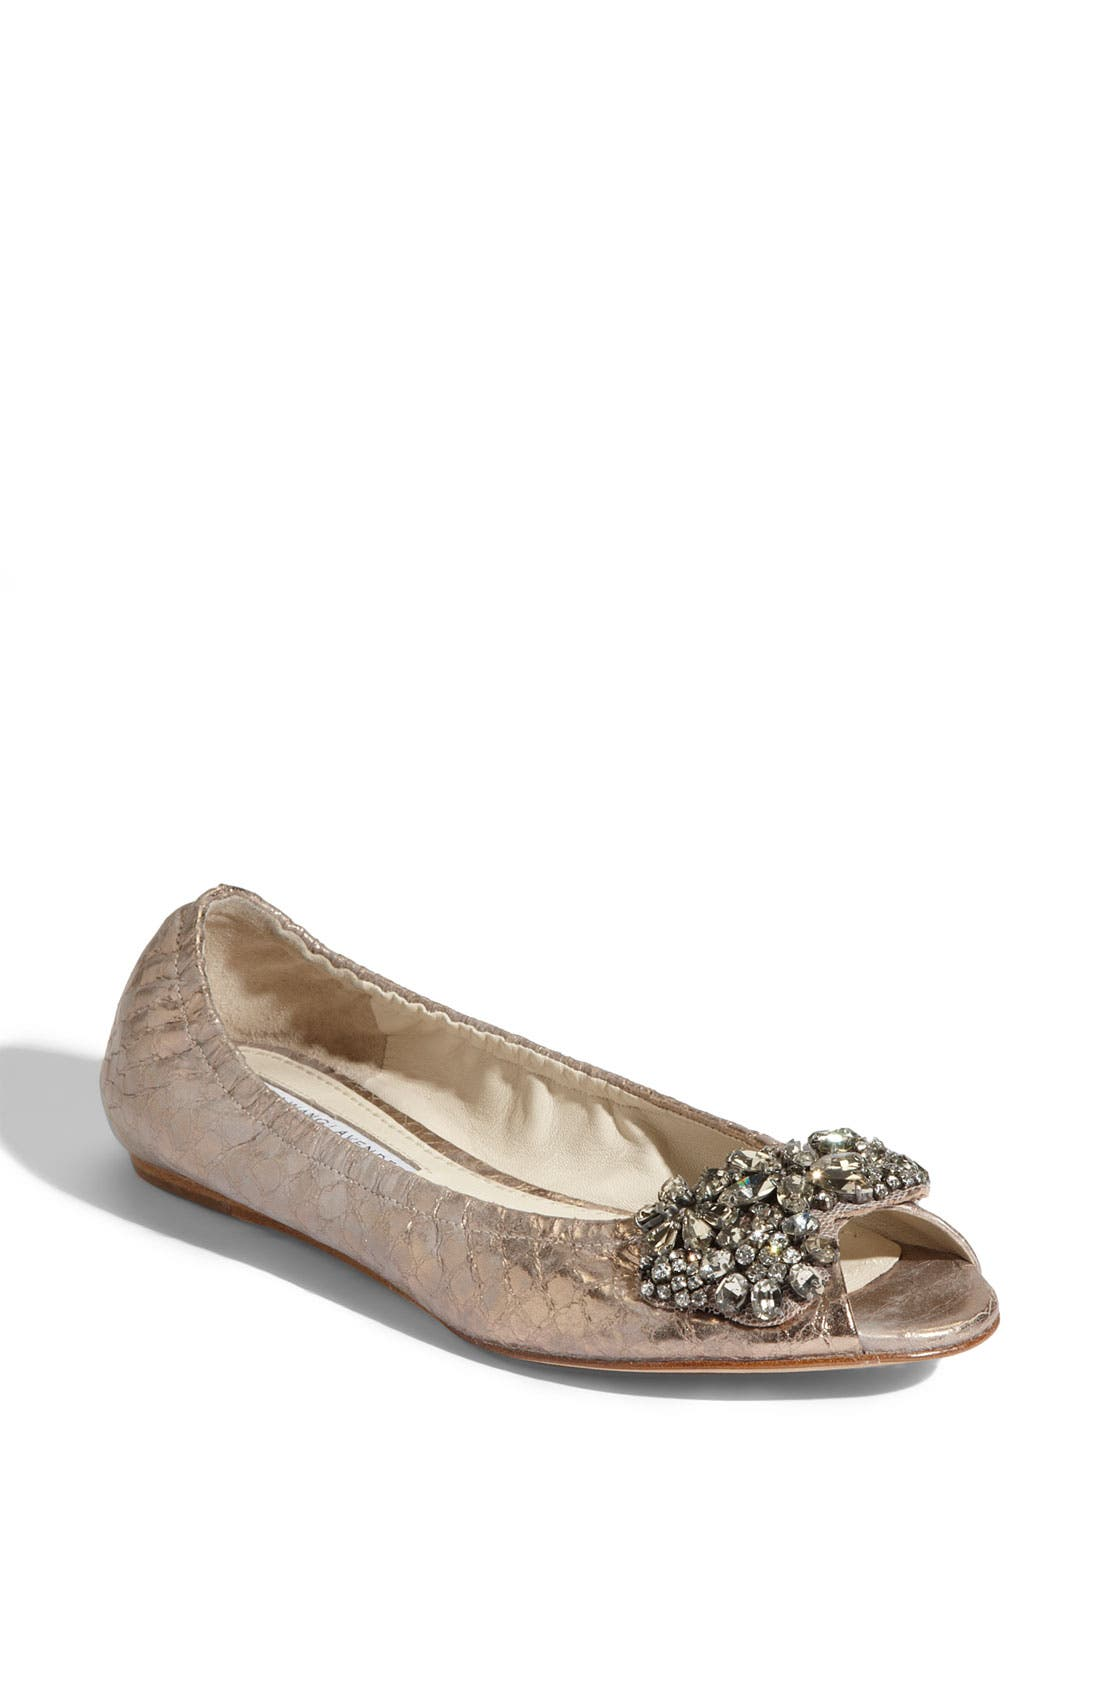 Main Image - Vera Wang Lavender 'Luna' Snake Embossed Metallic Leather Flat